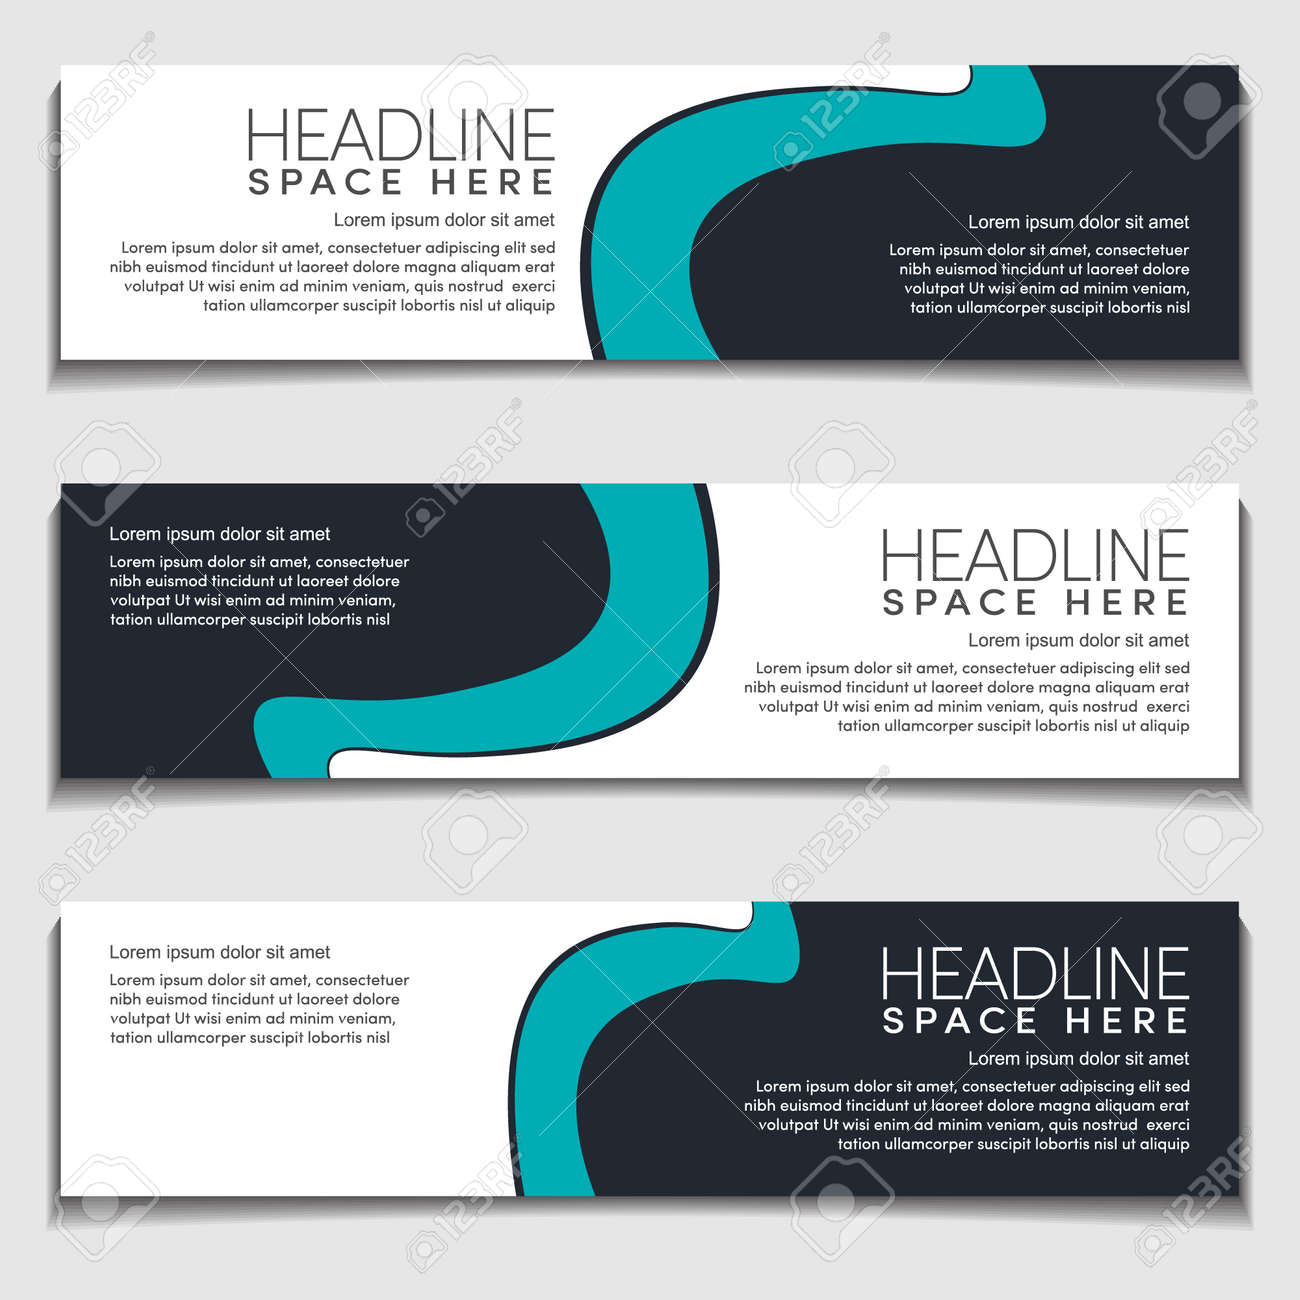 Design Modern Wavy, Wave, Curve Cyan Gradient Light Background for Web Banner, Label, Header, Publication Advertising.Vector Abstract EPS10 - 159863623